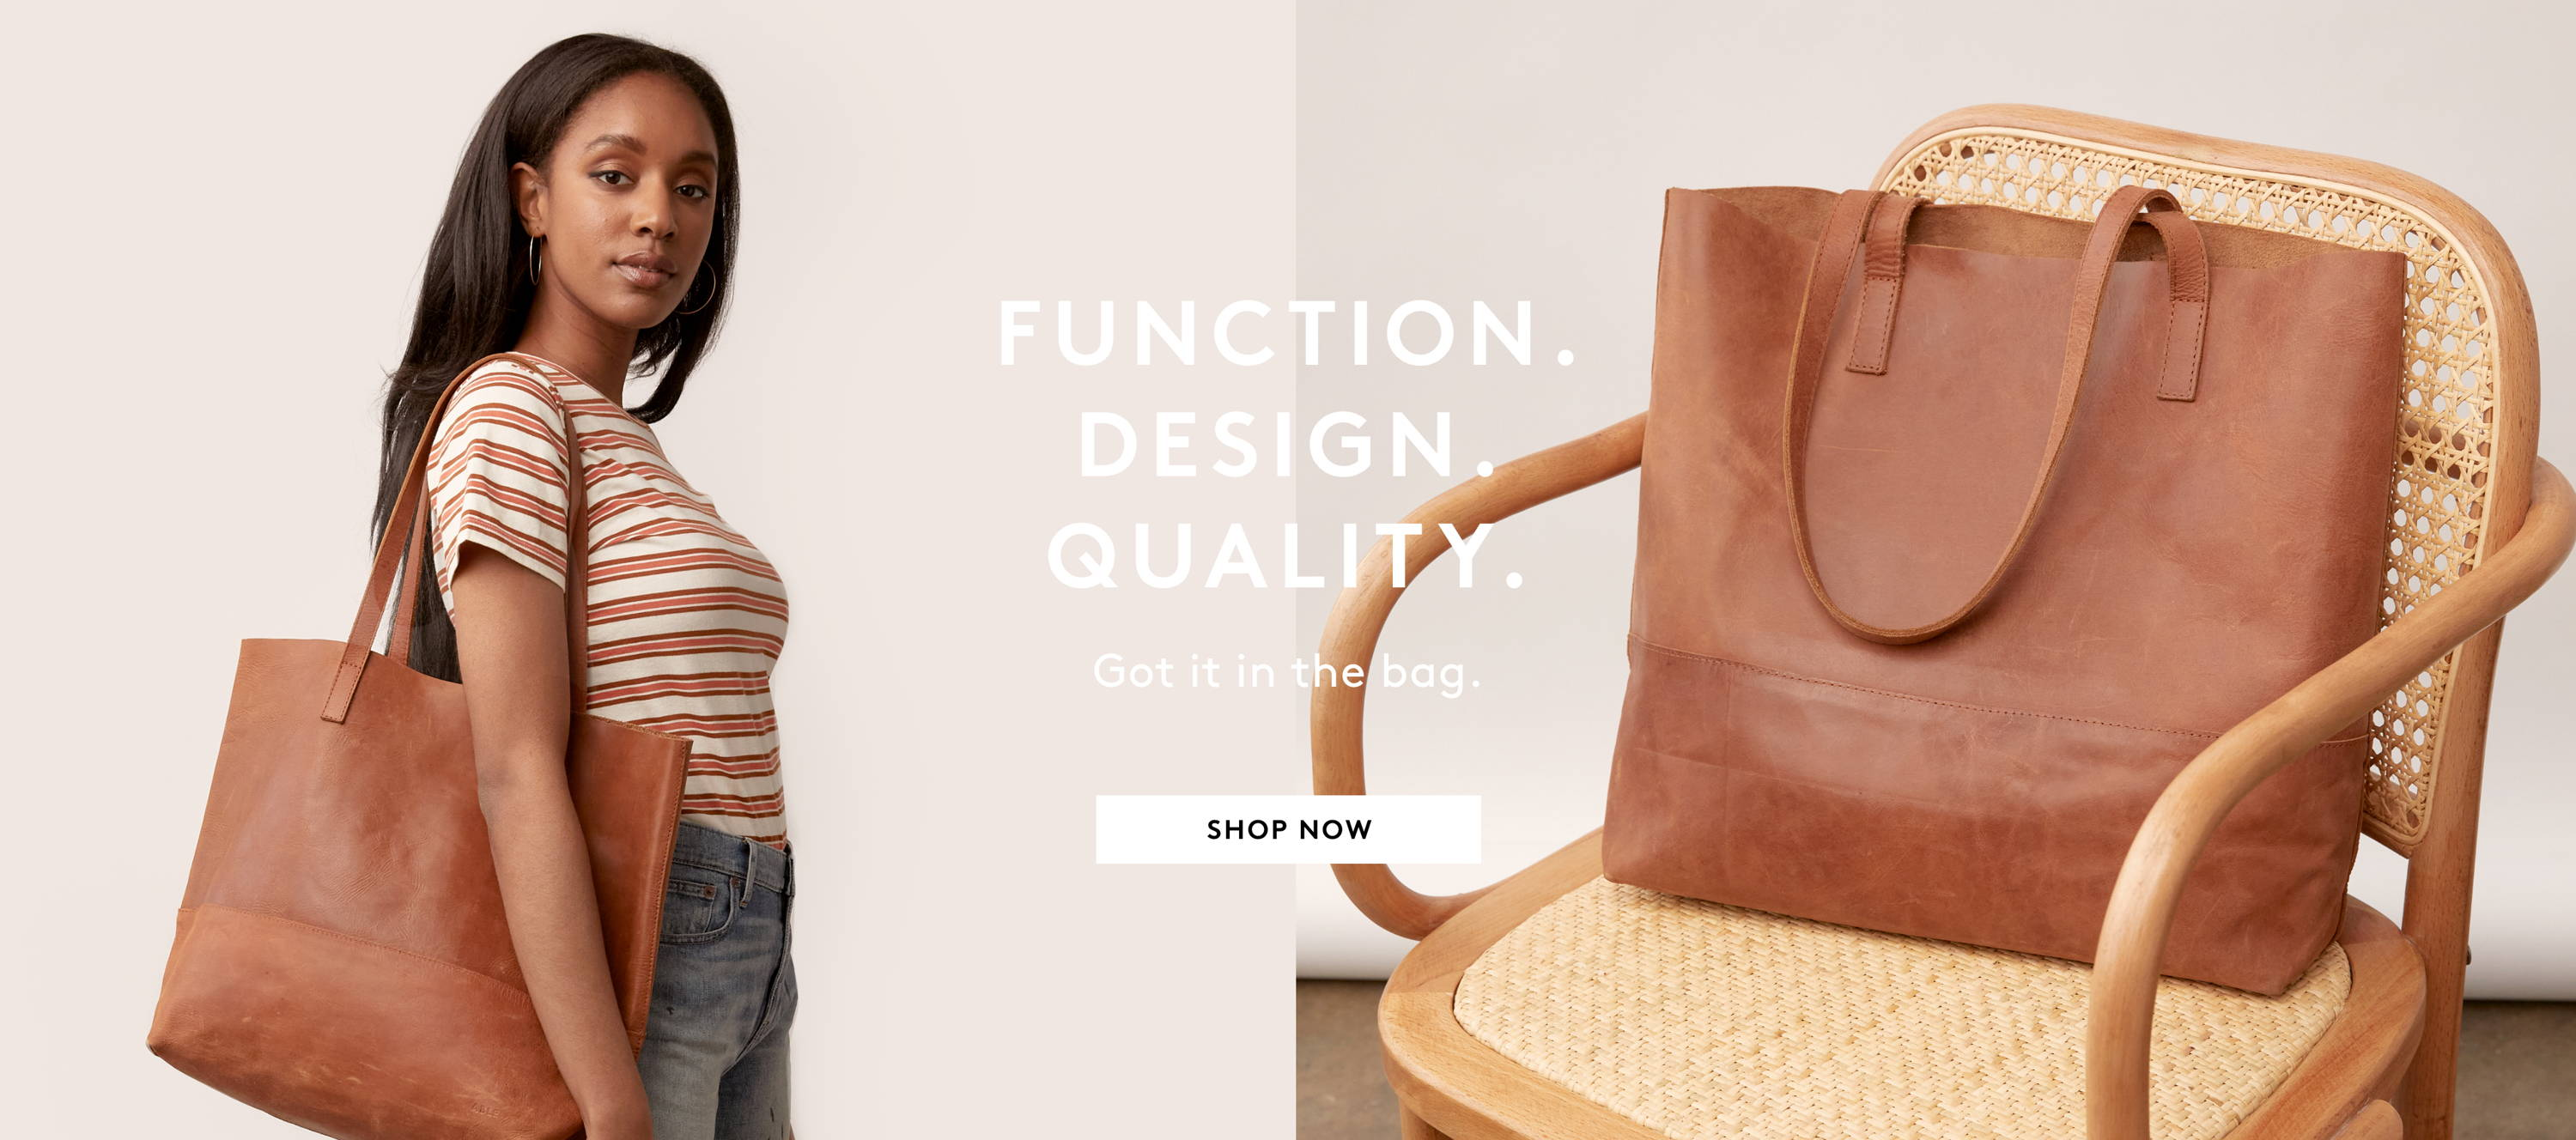 Function design quality got it in the bag